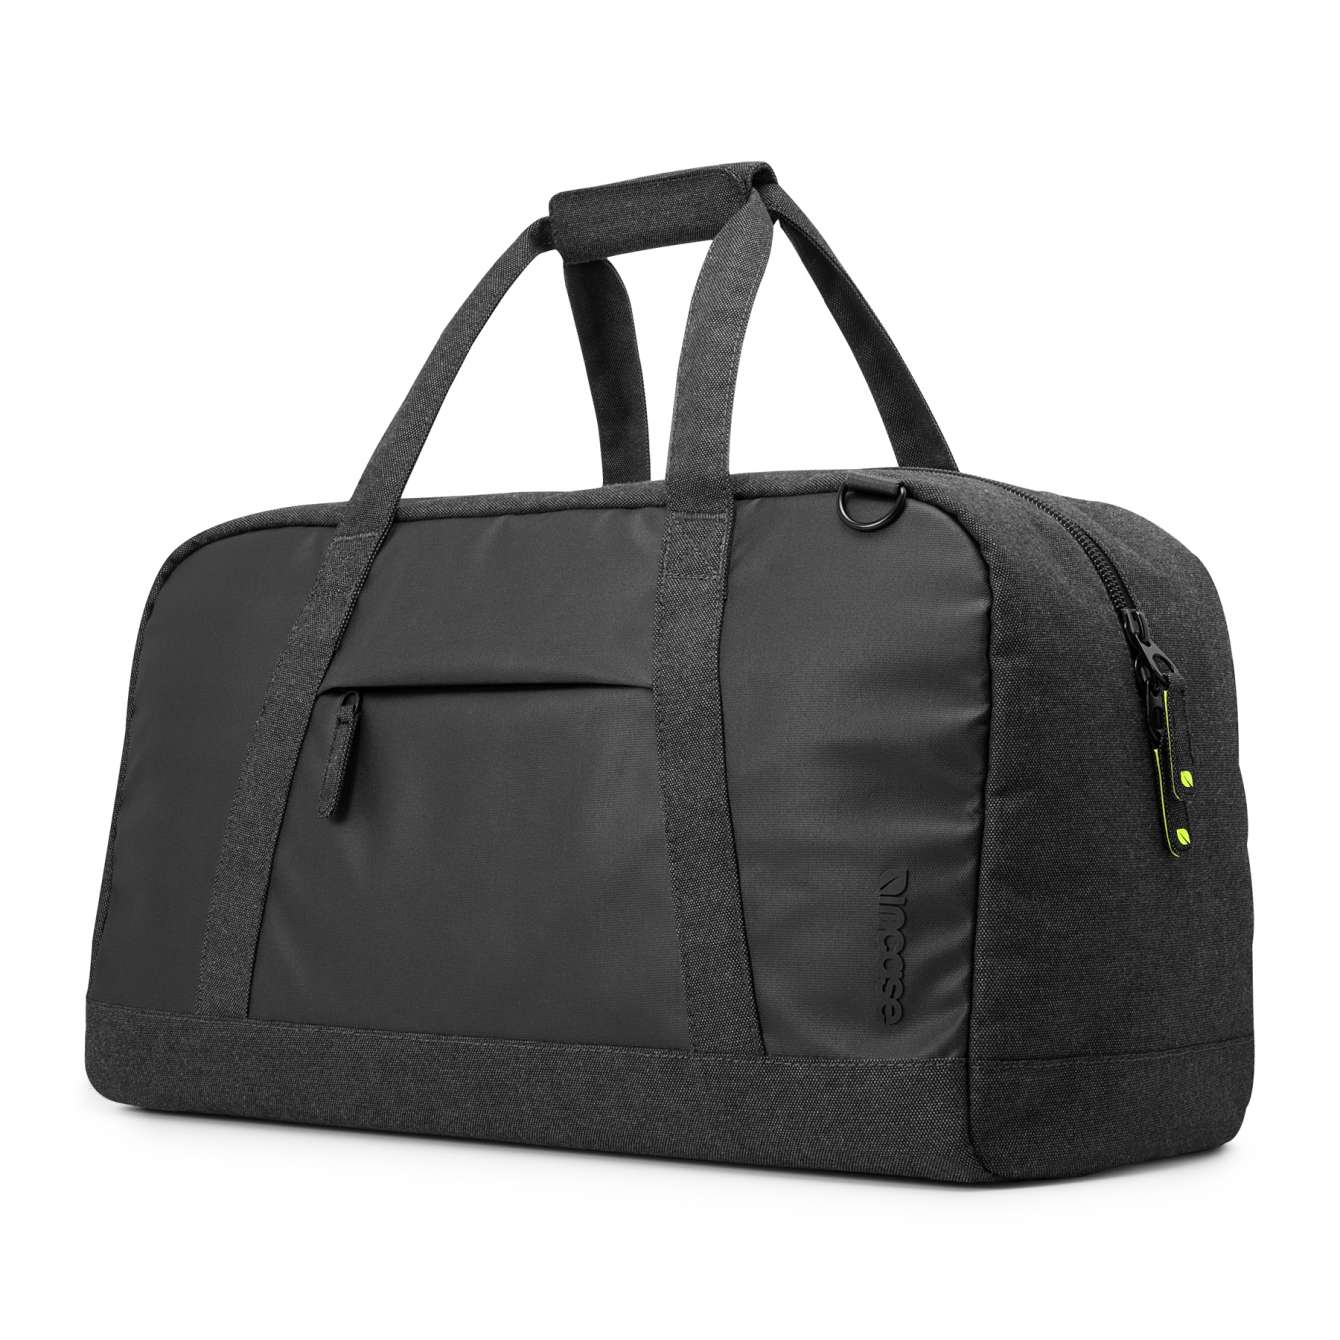 Incase Travel Collection Duffel